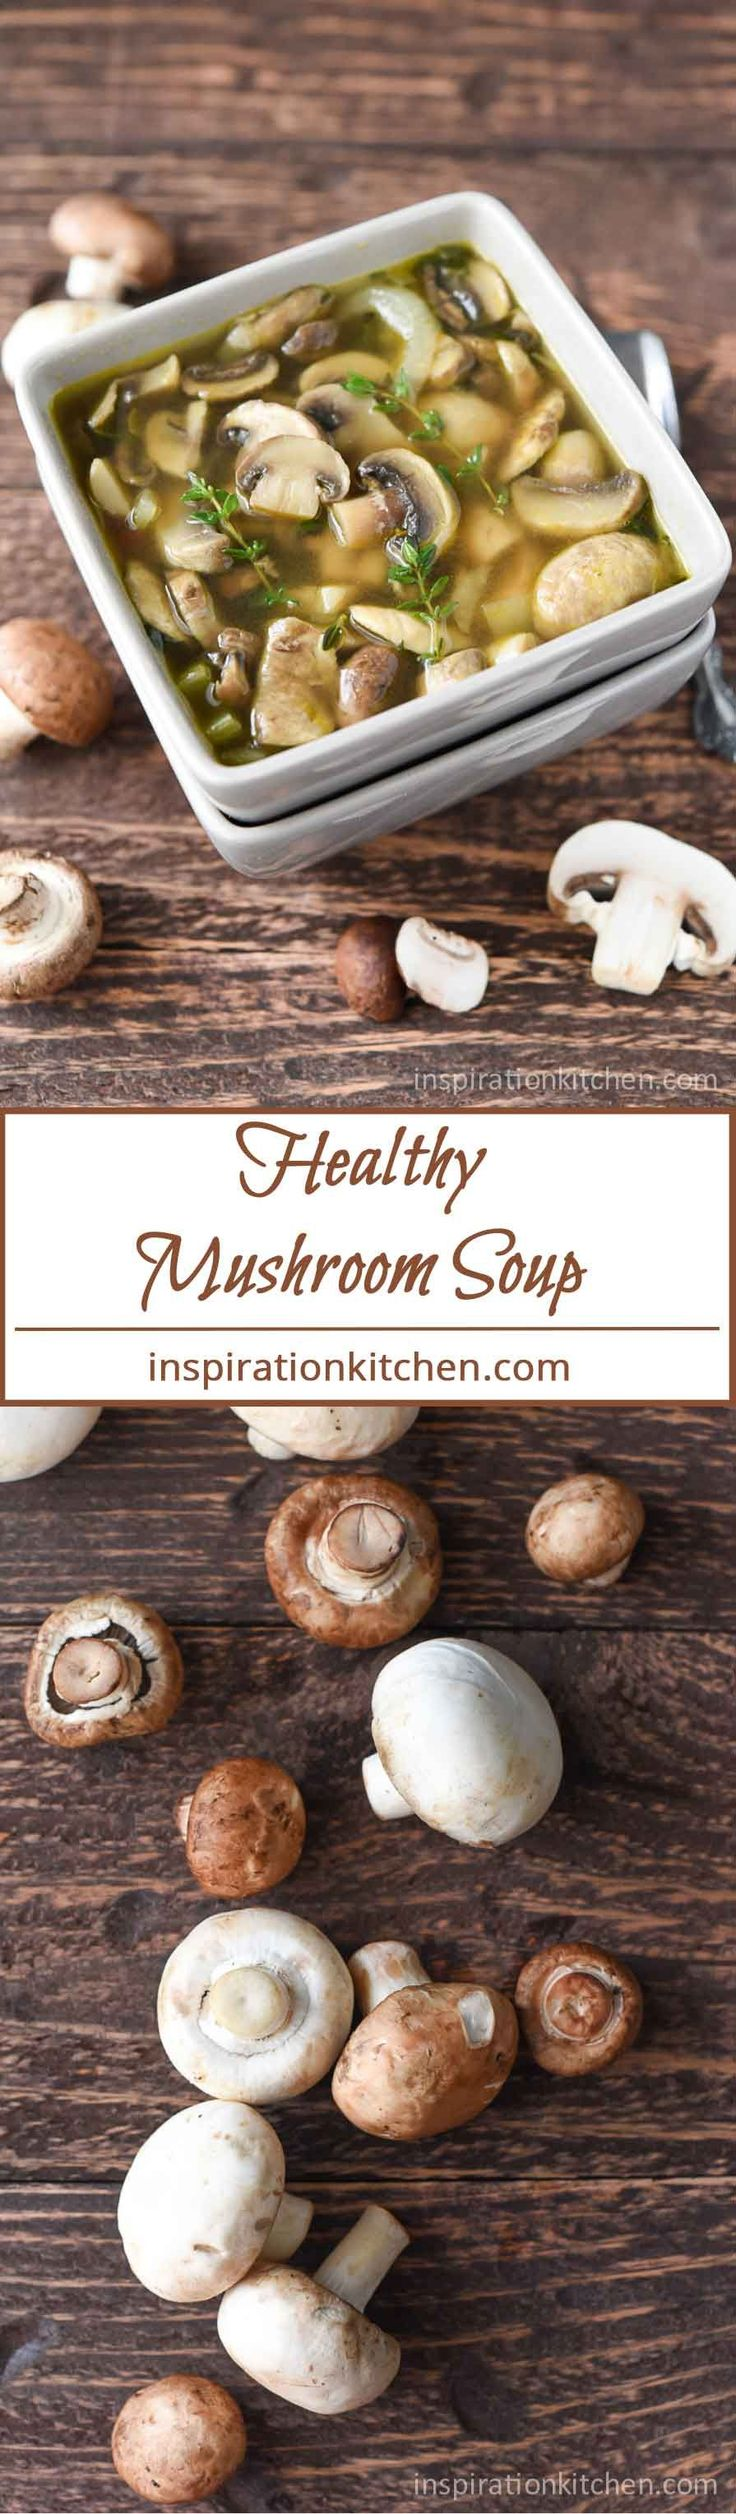 Healthy Mushroom Soup | Inspiration Kitchen- change butter to olive oil and it's 21 Day Fix Approved!